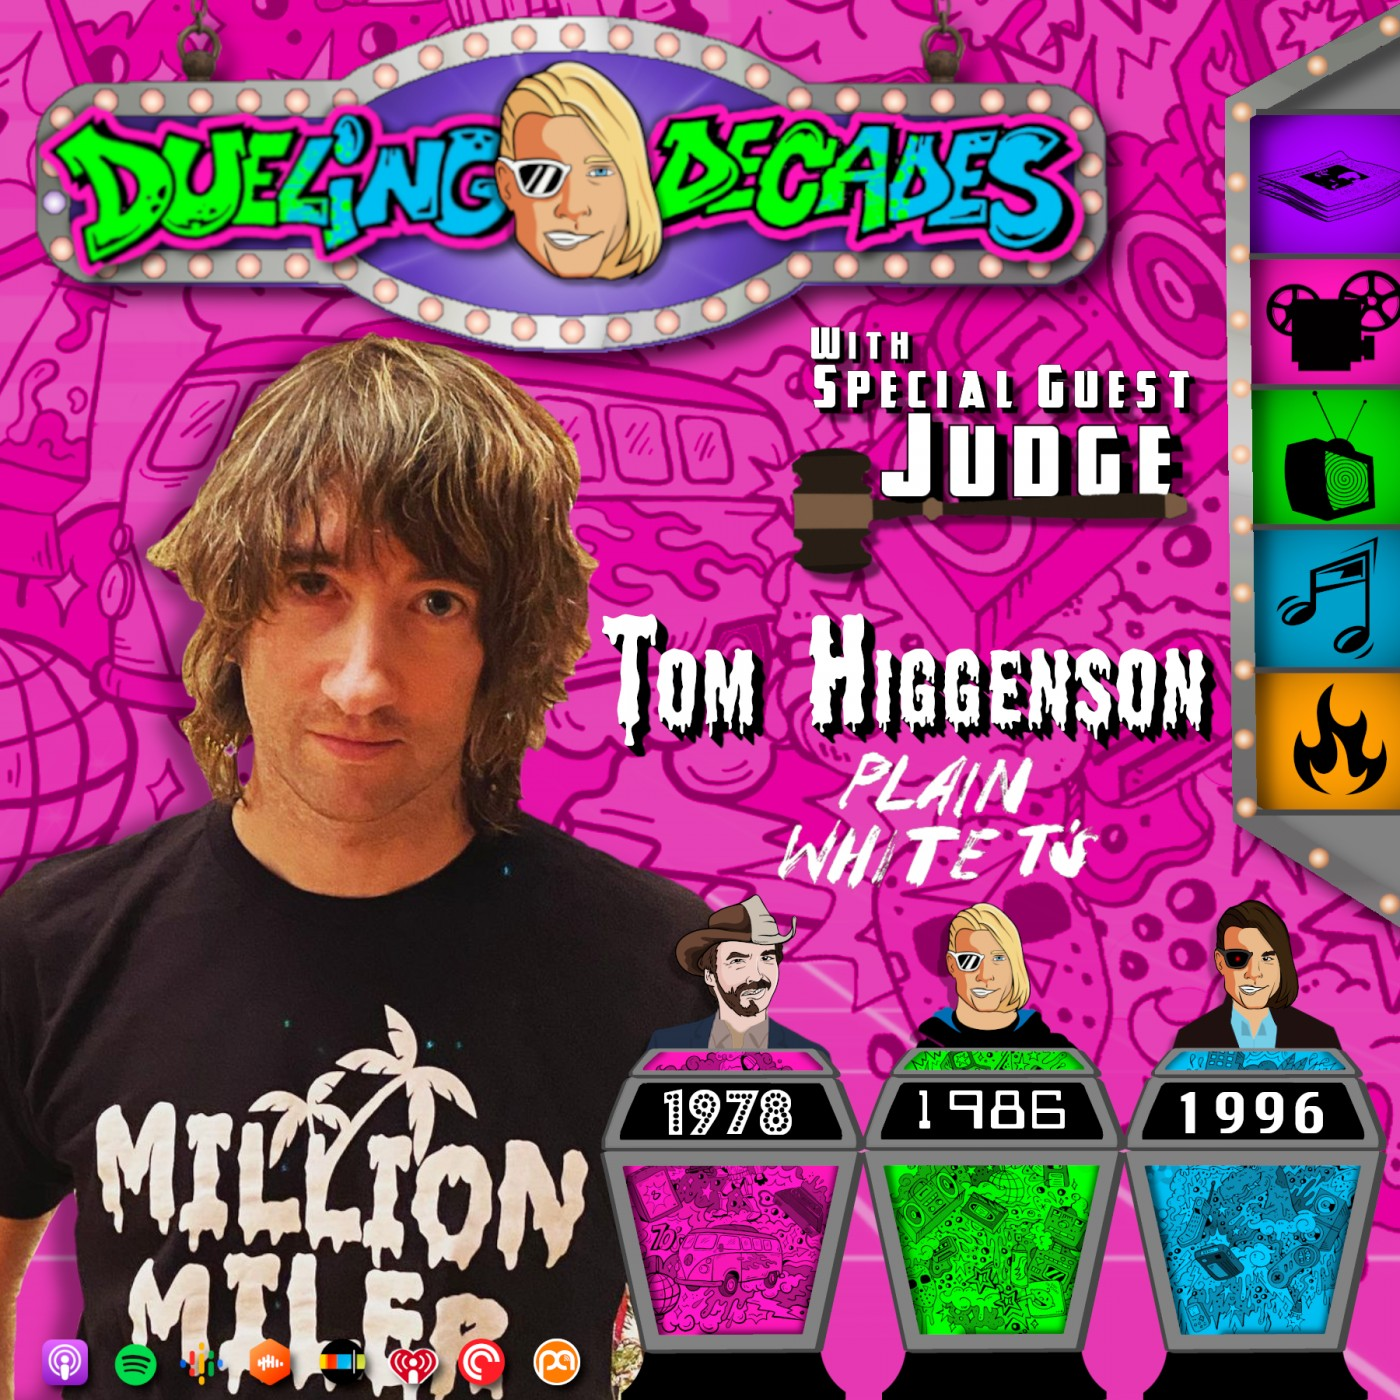 Taking a Million Miler with Tom Higgenson of the Plain White Ts in this battle between 1978, 1986, & 1996!